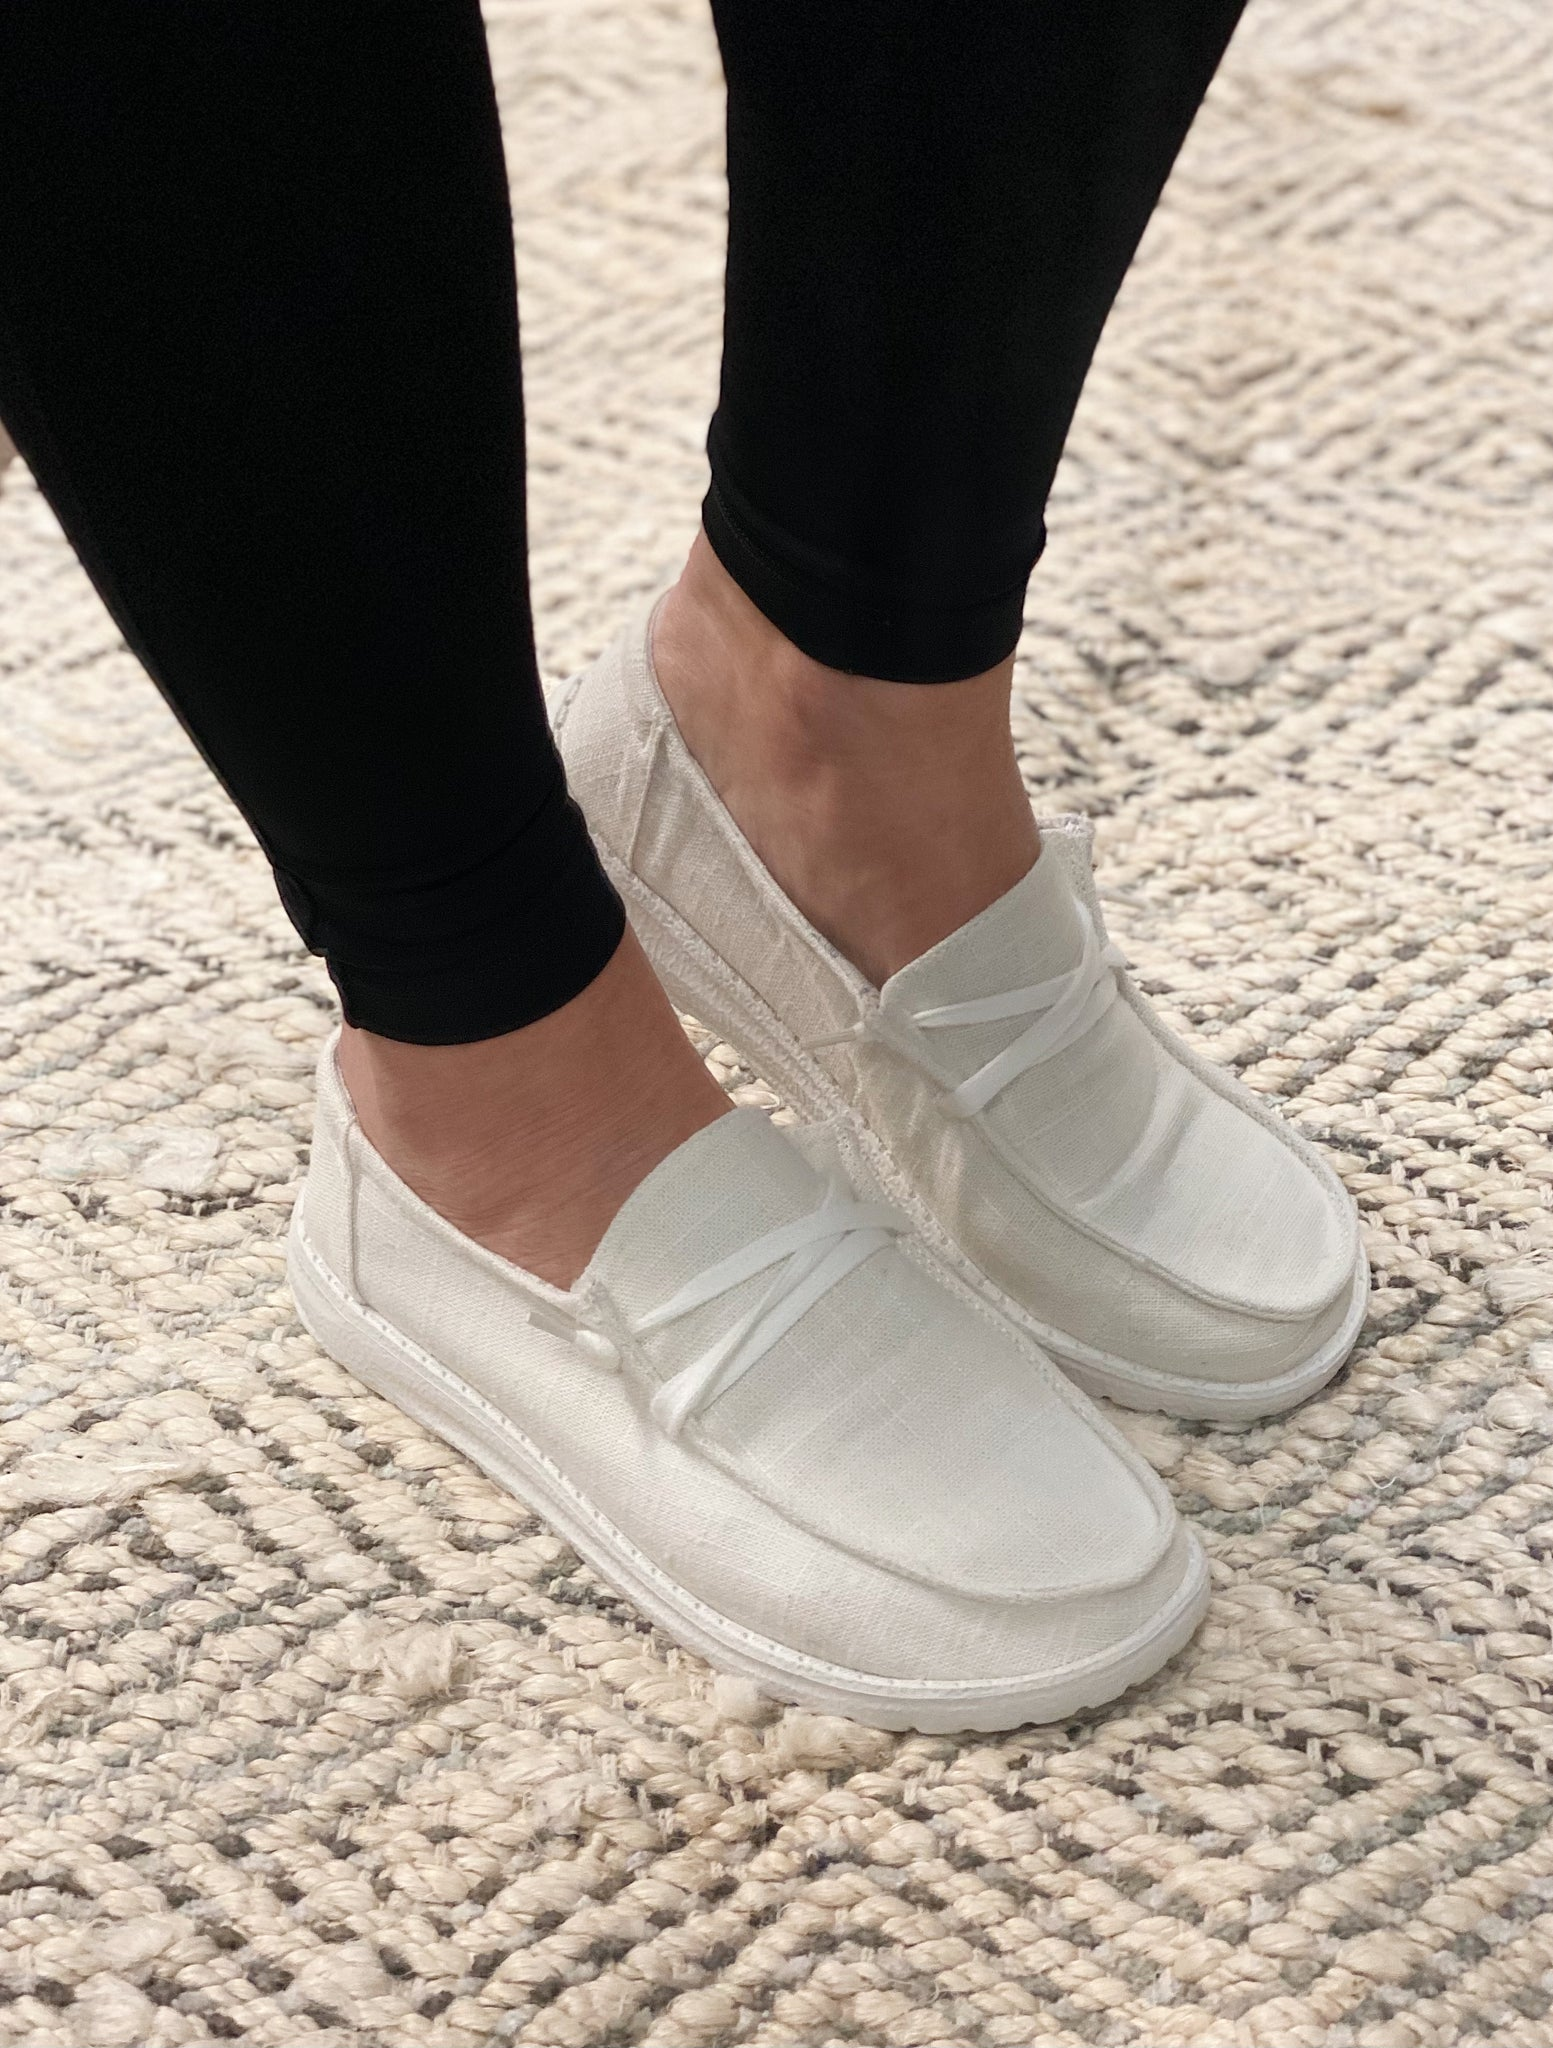 Gypsy Jazz Sneakers in White